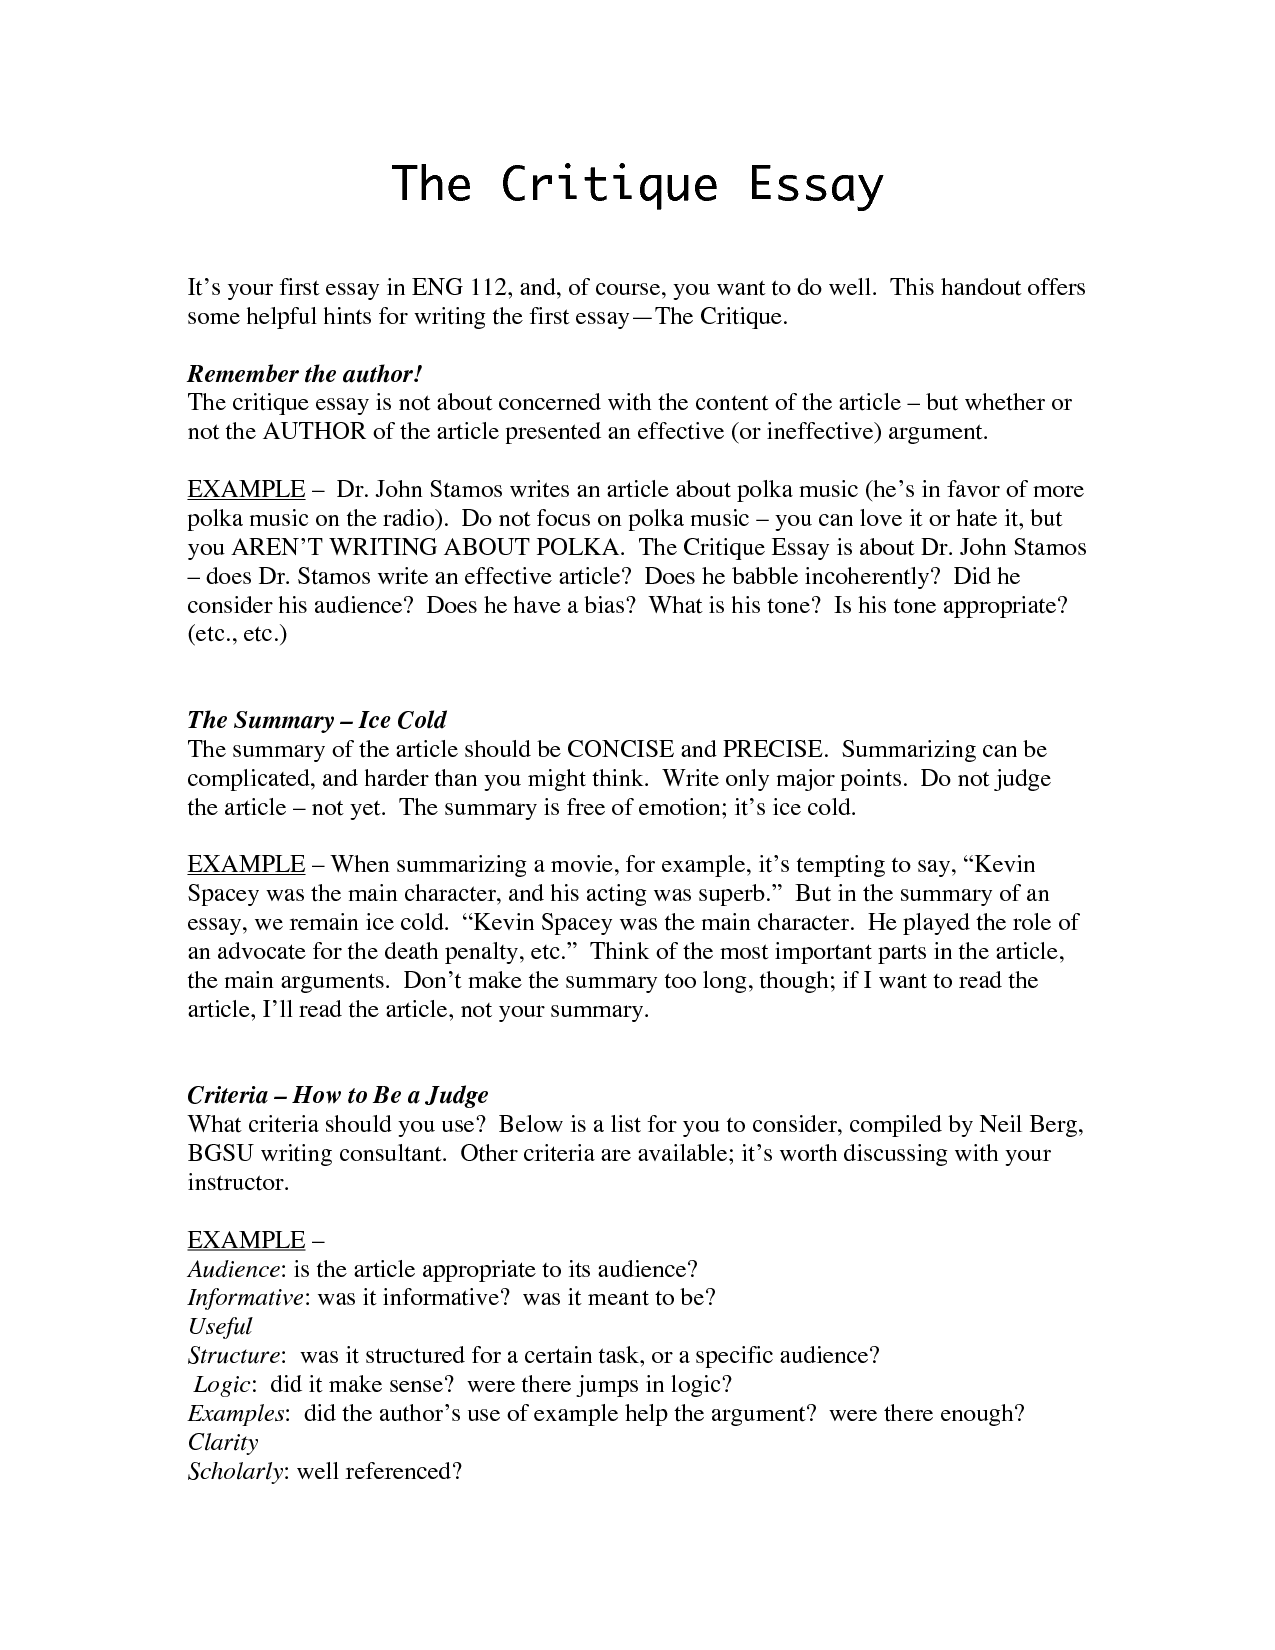 writing a critical film essay - Literary Essay Format